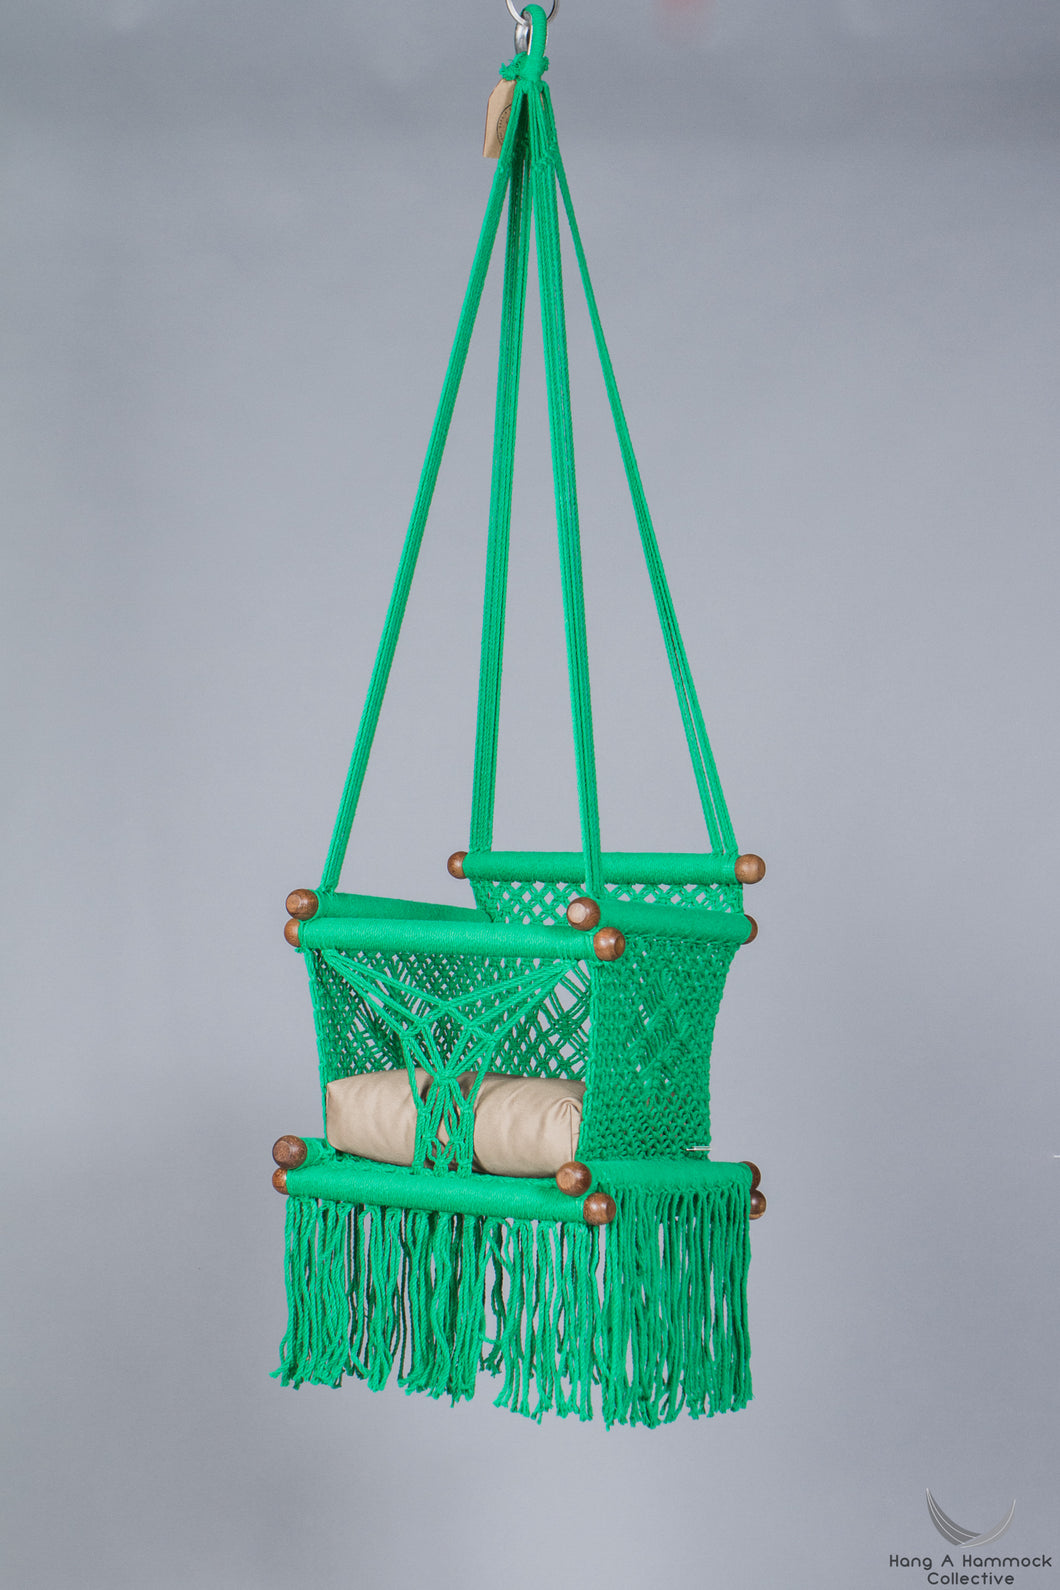 swing chair in green - khaki cushion - studio picture